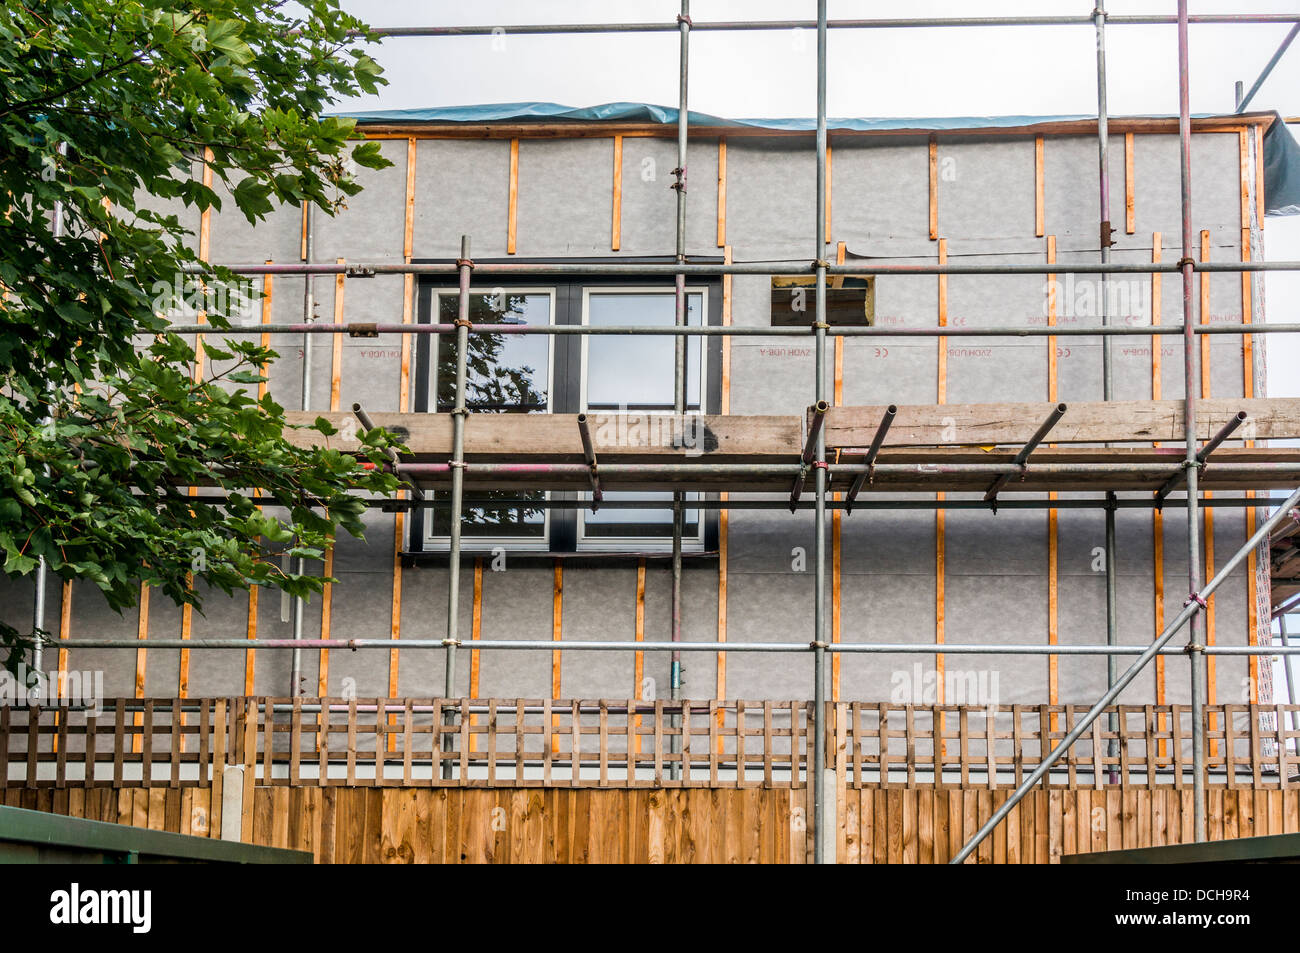 Scaffolding around a new building - a new construction to extend an existing school in Banstead, Surrey, England, - Stock Image